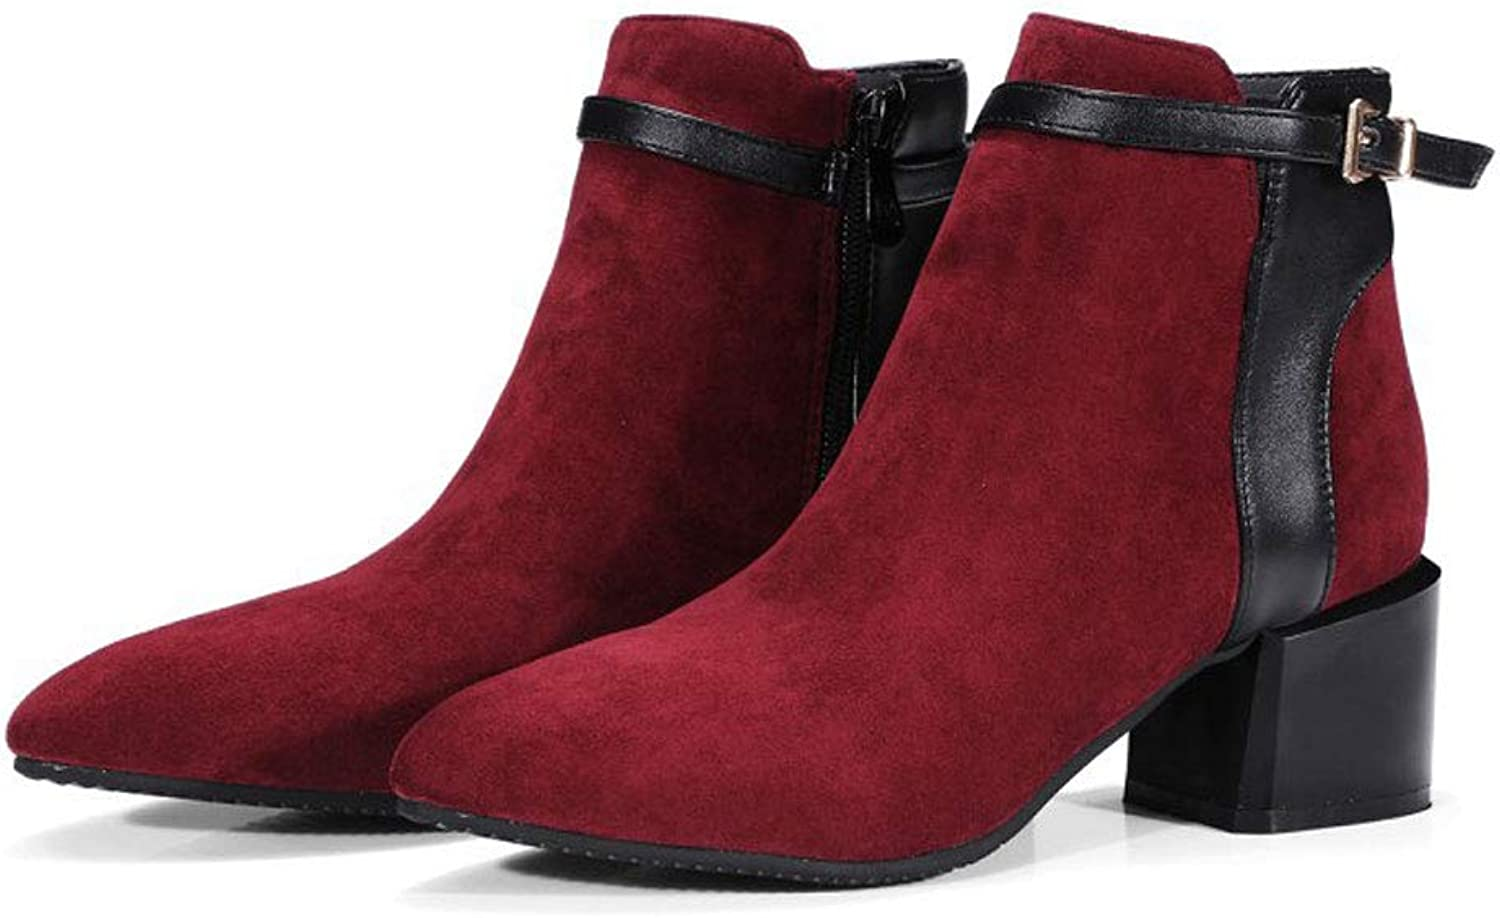 High-Heeled Short Boots, Thick with Pointed Ankle Boots Side Zipper Belt Buckle Martin Boots Waterproof Platform Low Boots Non-Slip Women's Comfortable Knight shoes